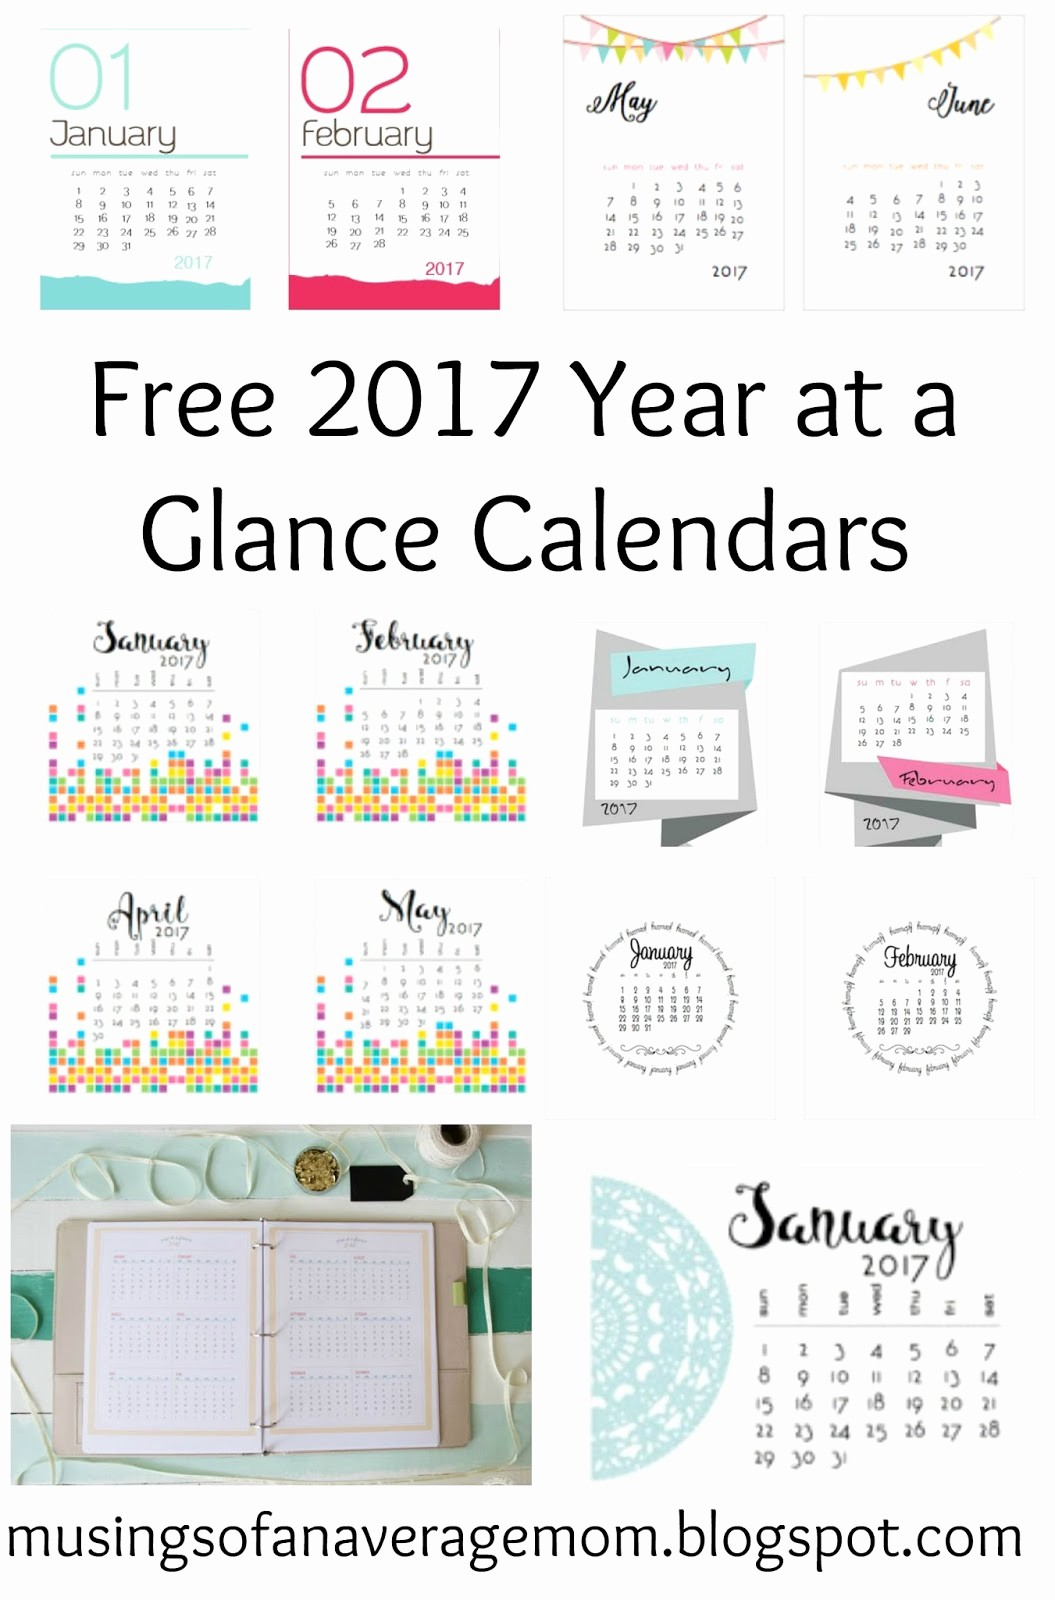 At A Glance Yearly Calendars Beautiful Musings Of An Average Mom 2017 Year at A Glance Calendars